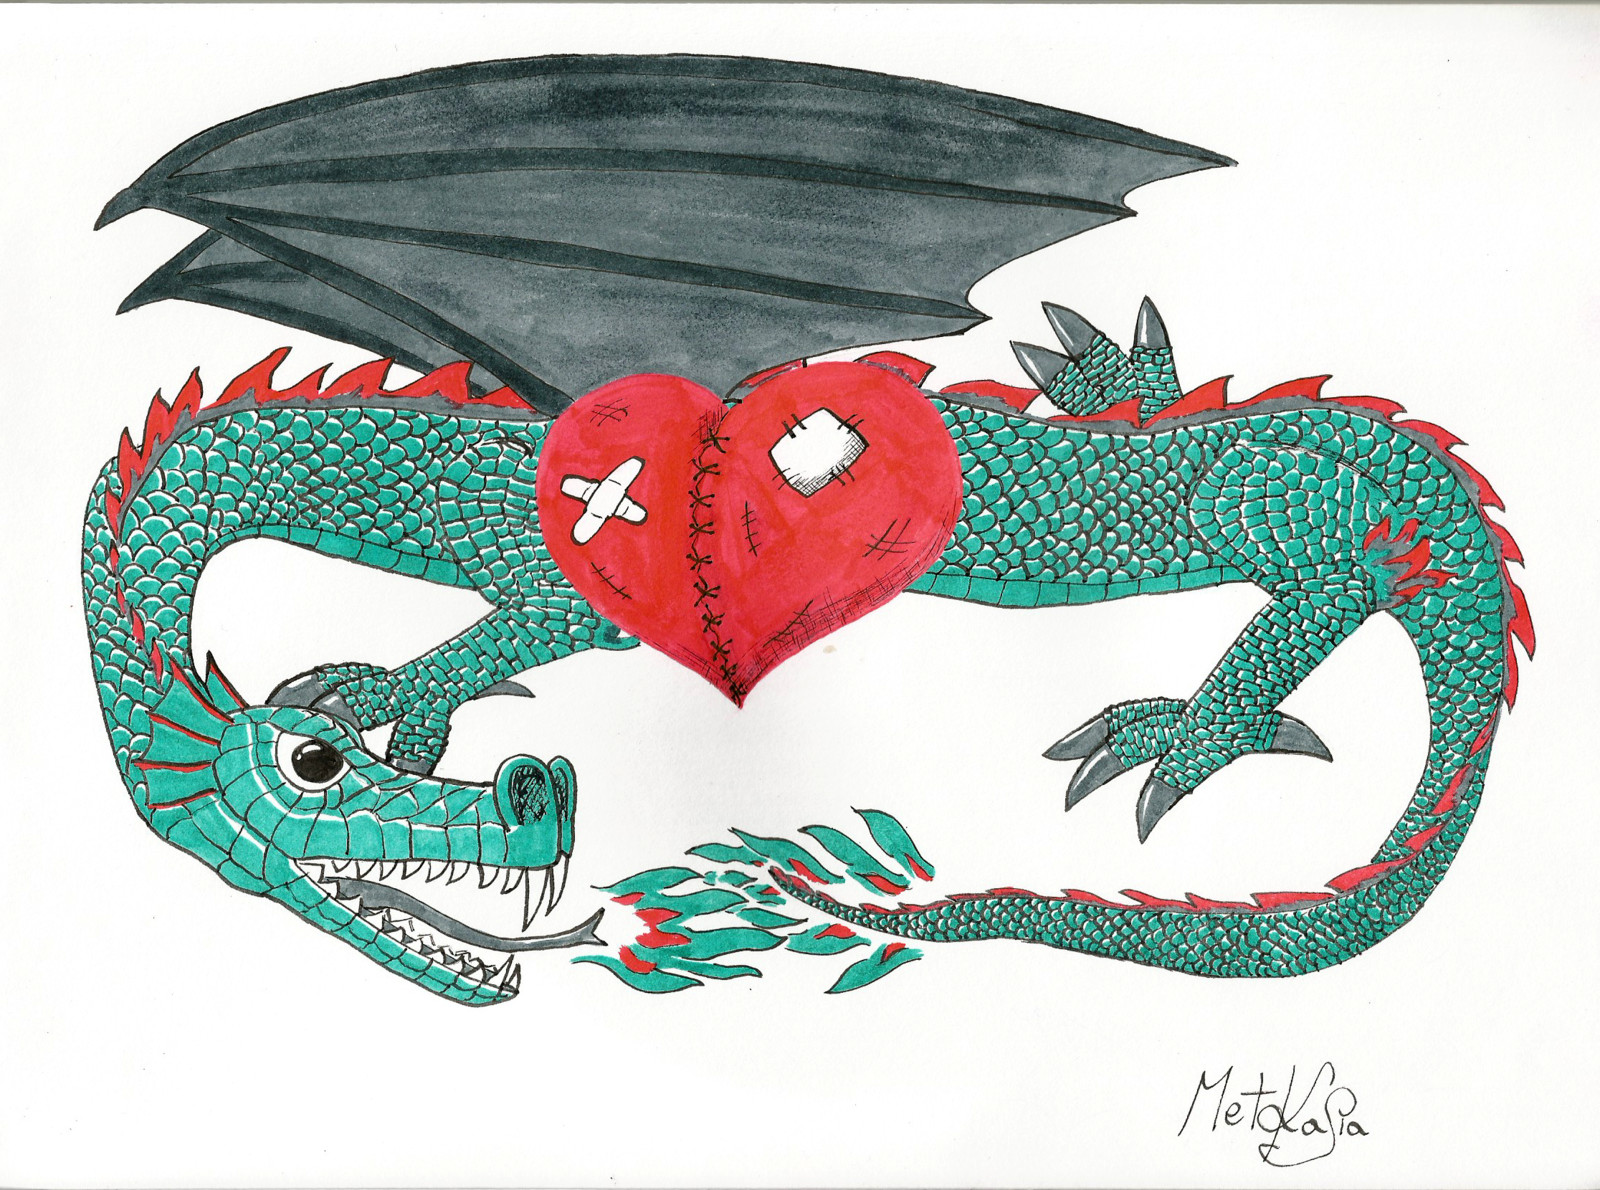 MetaDragon 2 - The Heartguard